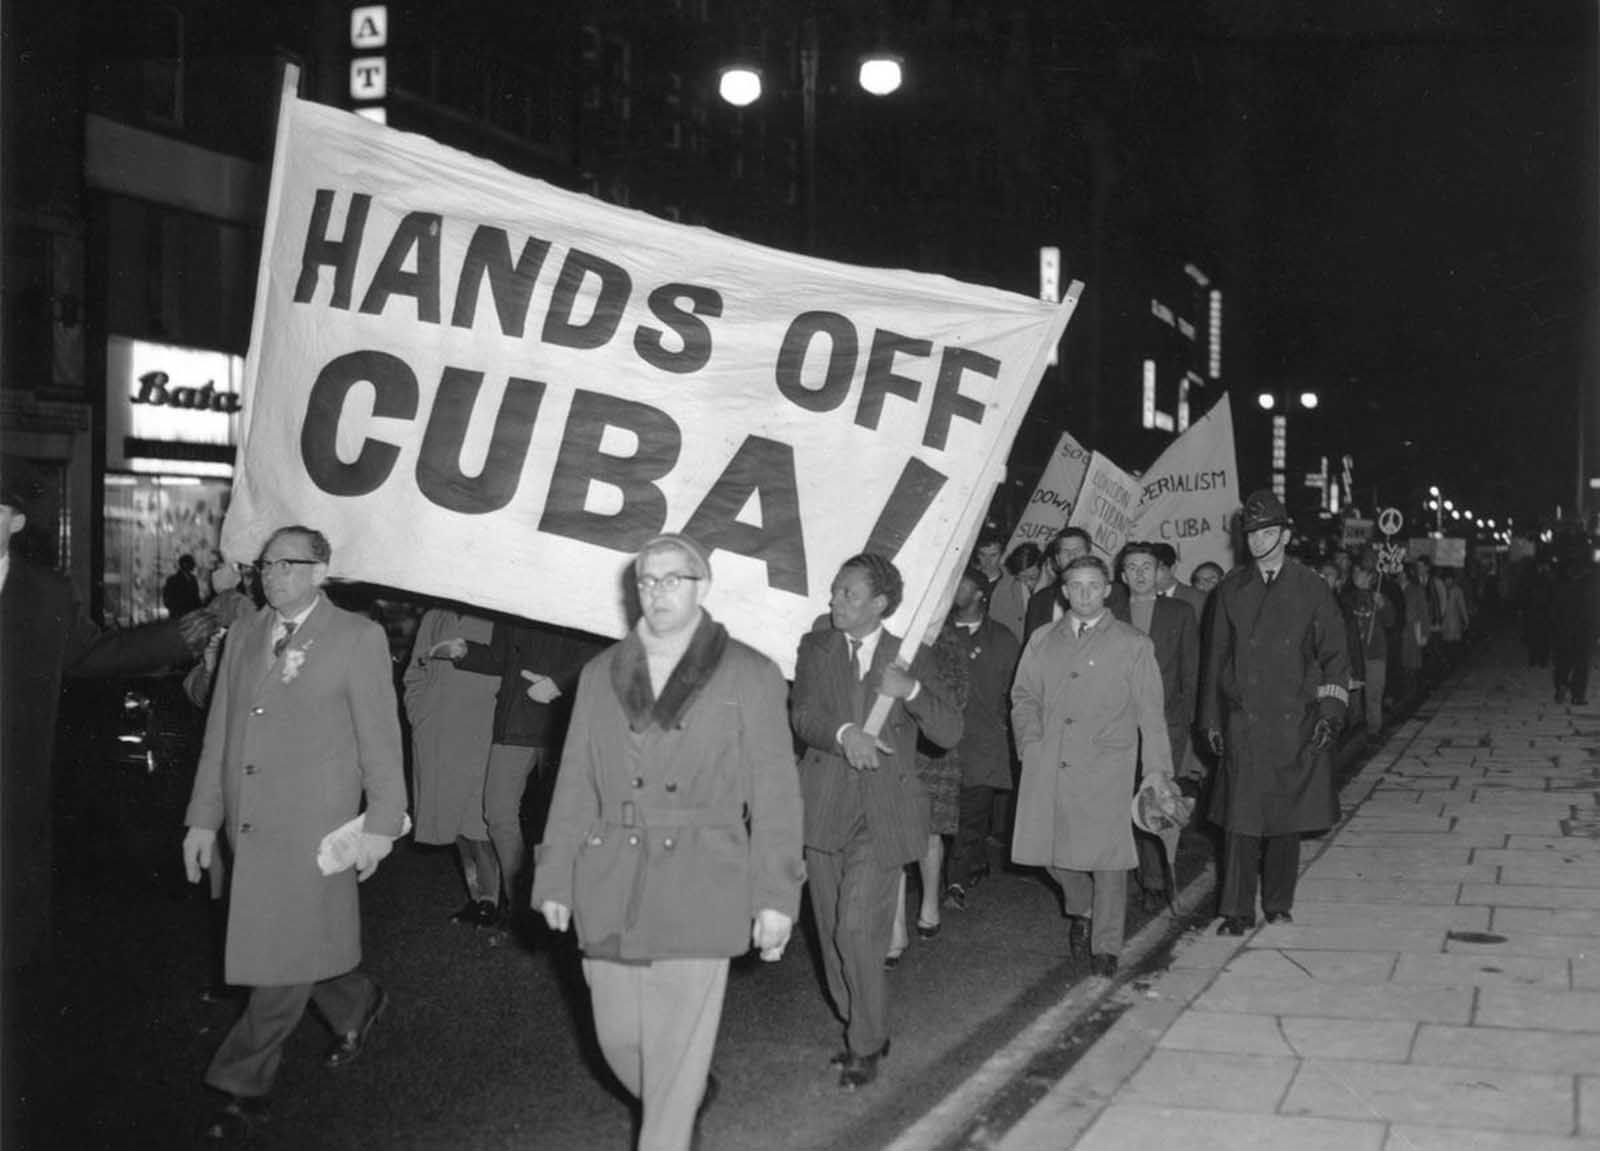 Members of the Campaign for Nuclear Disarmament (CND) march during a protest against the U.S. action over the Cuban missile crisis, on October 28, 1962 in London, England.